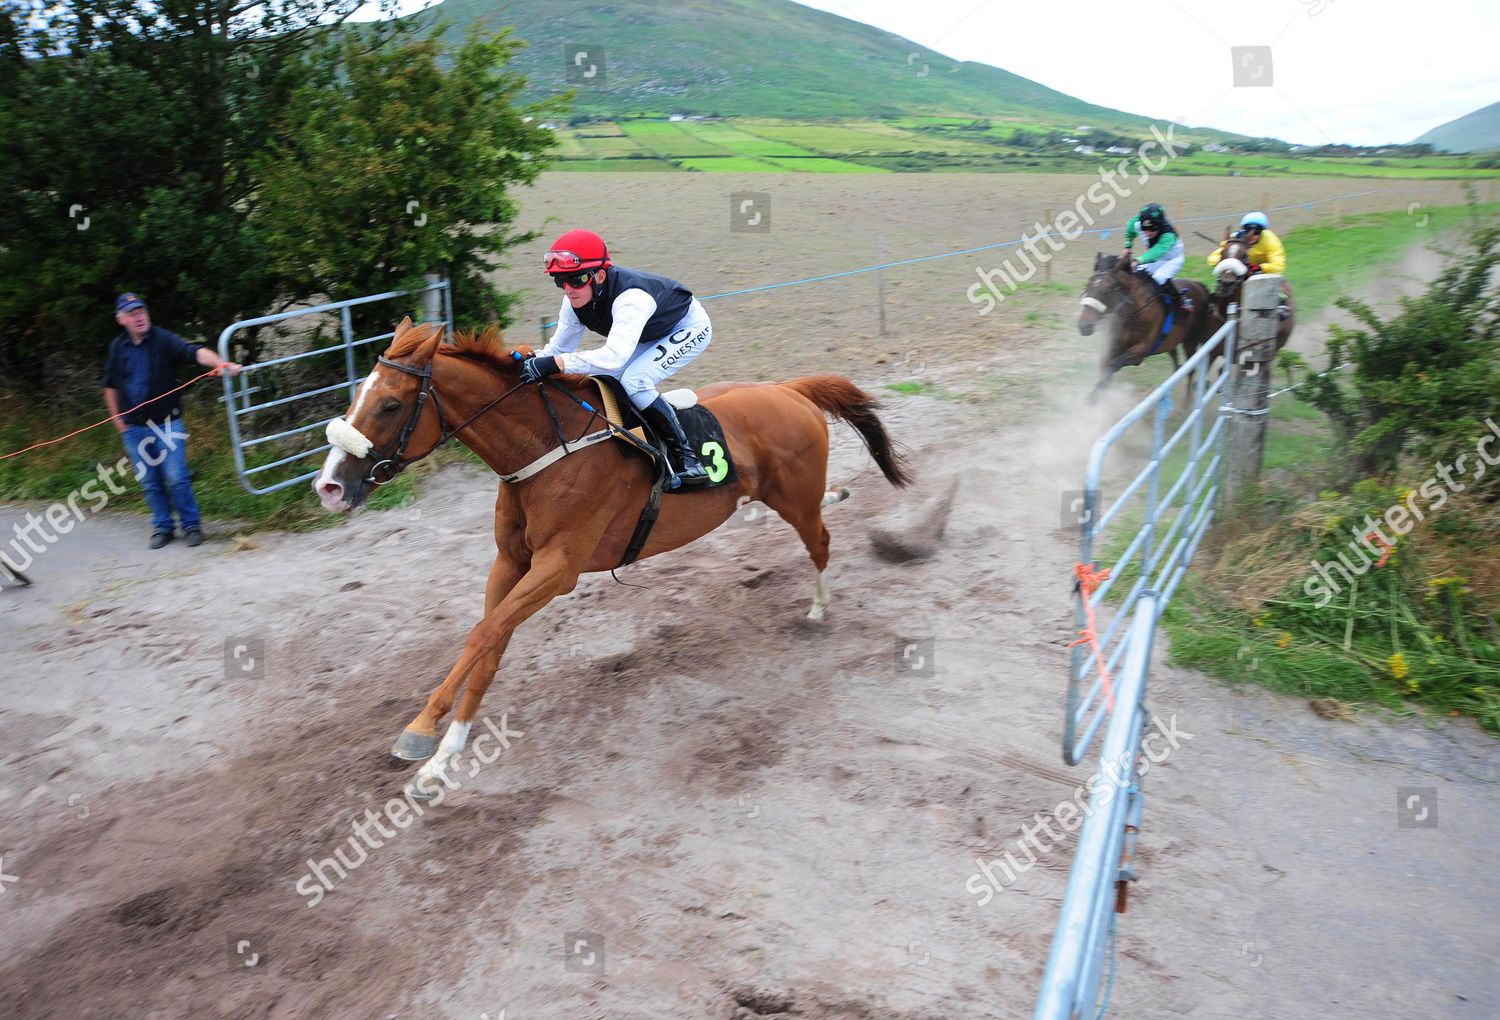 Cahersiveen Horse Pony Races SQUEEZE YOUR KNEES Editorial